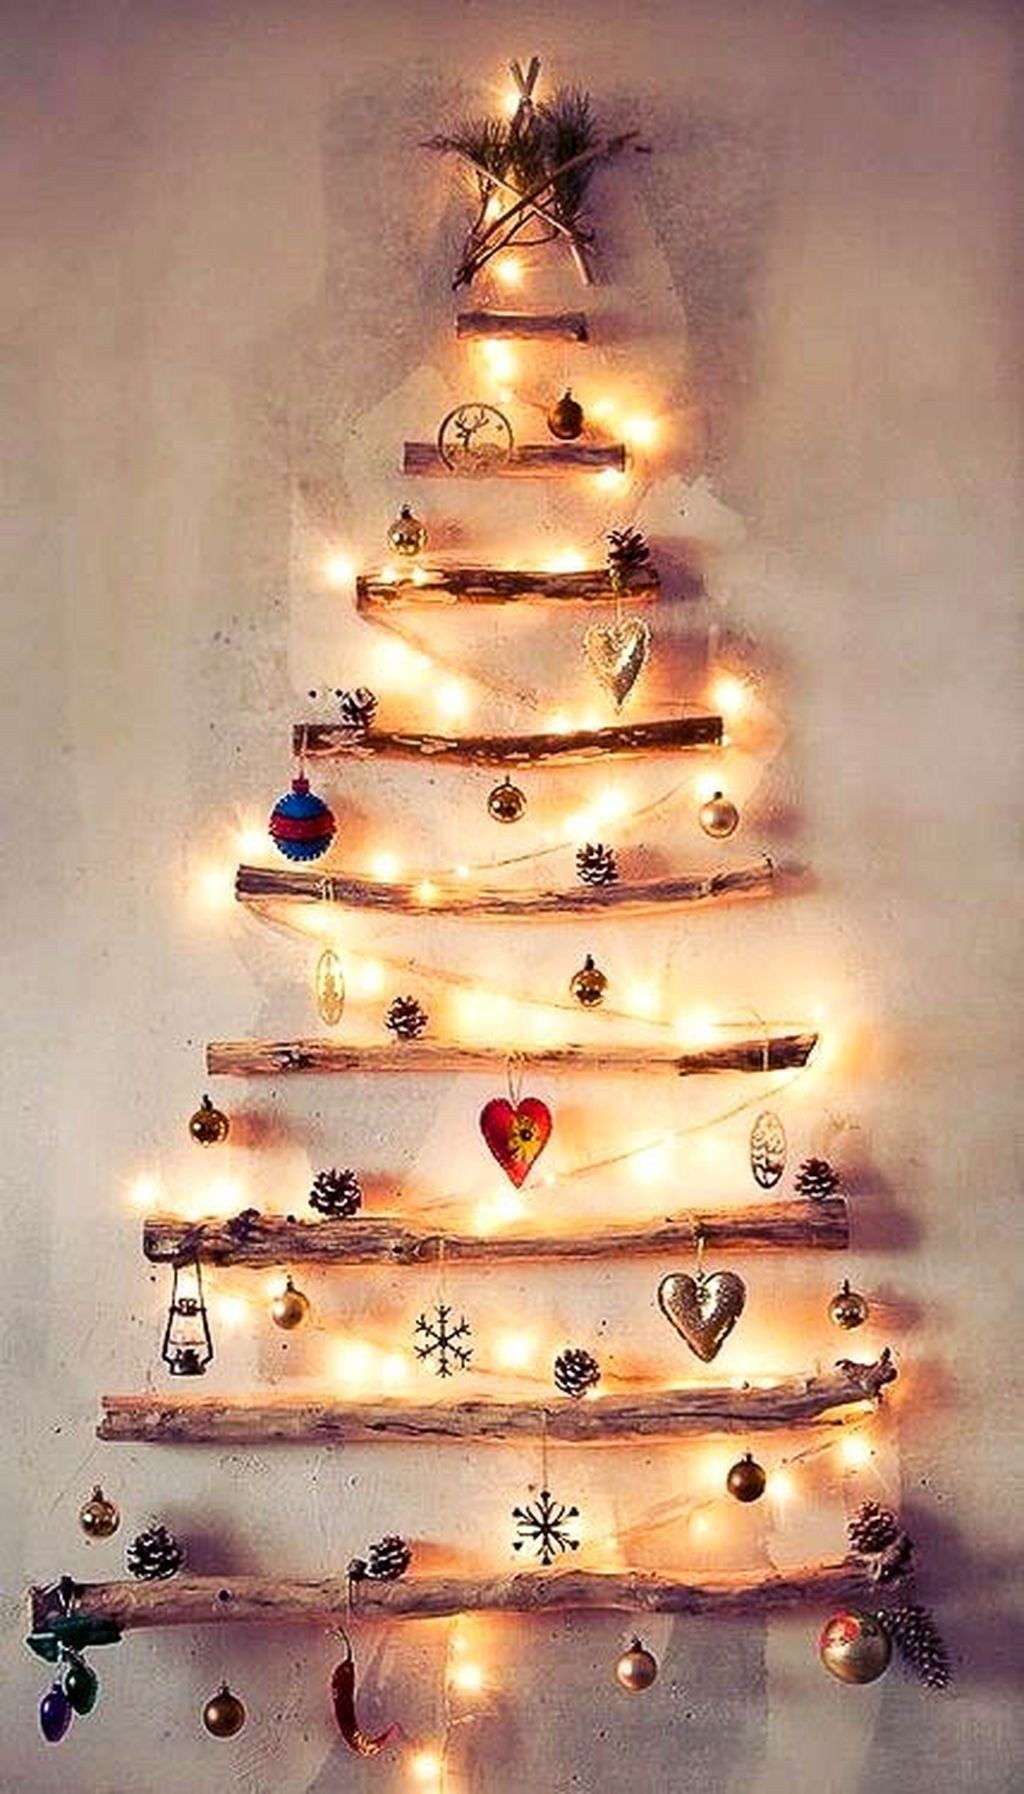 Brilliant And Inspiring Recycled Christmas Tree Decoration Ideas 12 ...